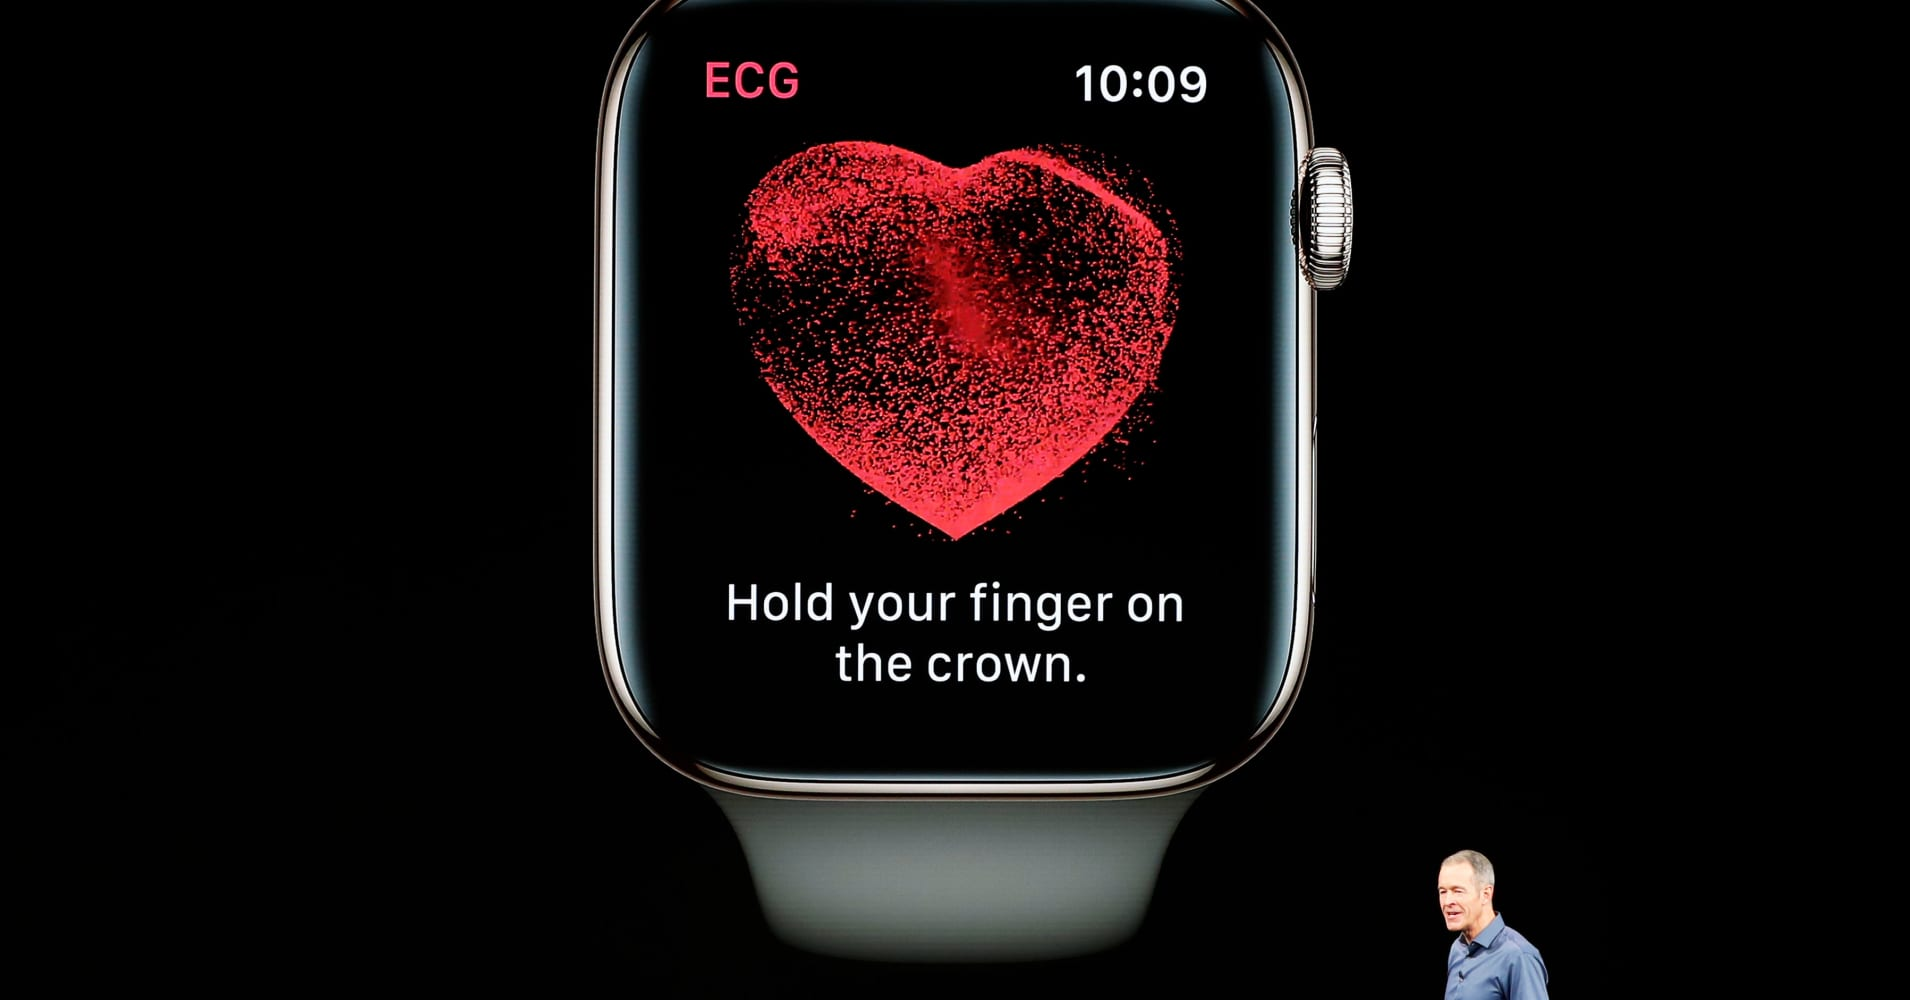 Heart doctor: Here are four things I'd need to see before trusting the Apple Watch